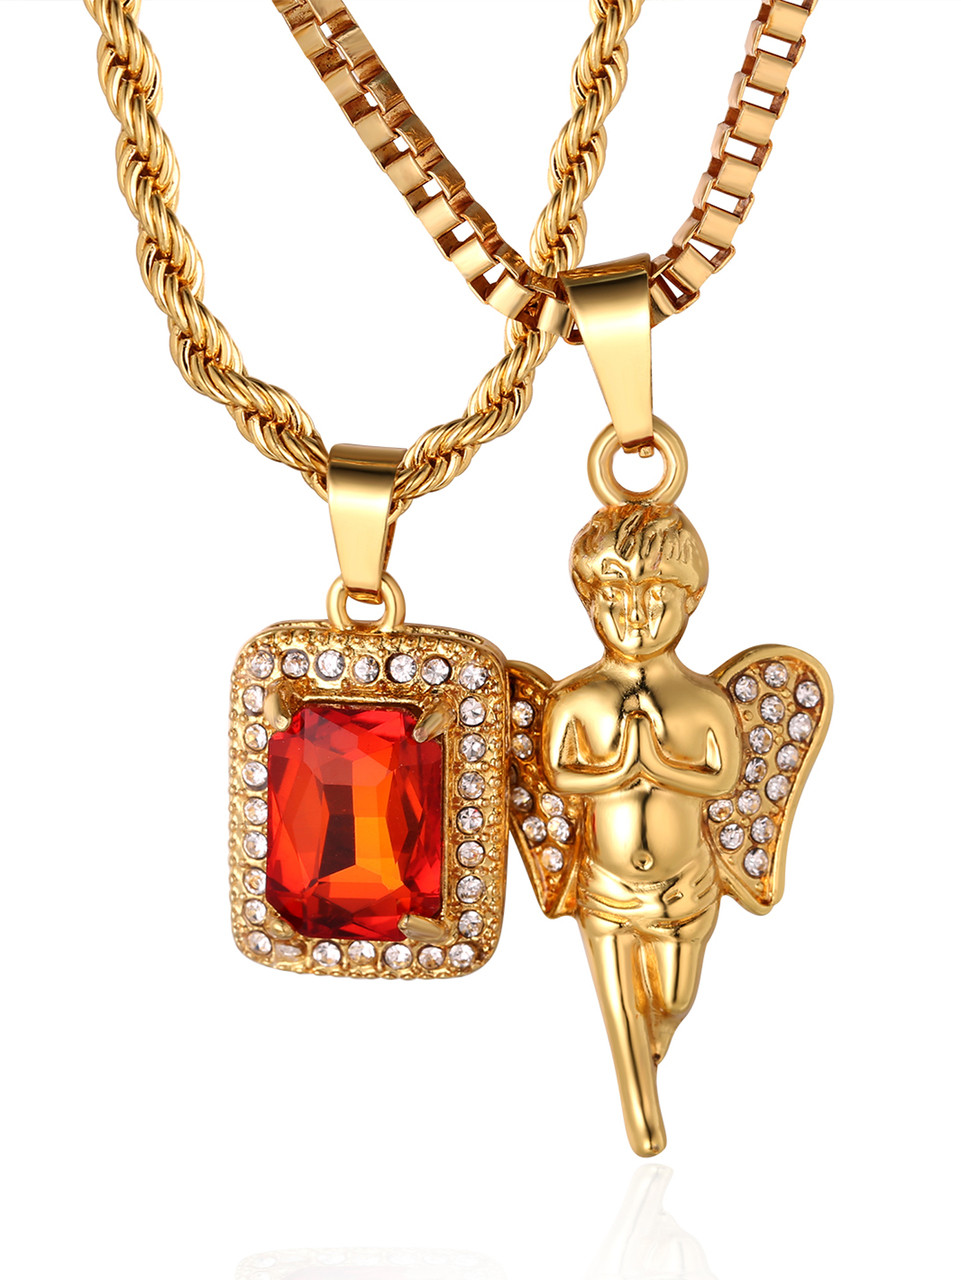 Halukakah gold bless all mens 18k real gold plated angel ruby halukakah gold bless all mens 18k real gold plated angel ruby pendant necklace 2 chains set mozeypictures Choice Image